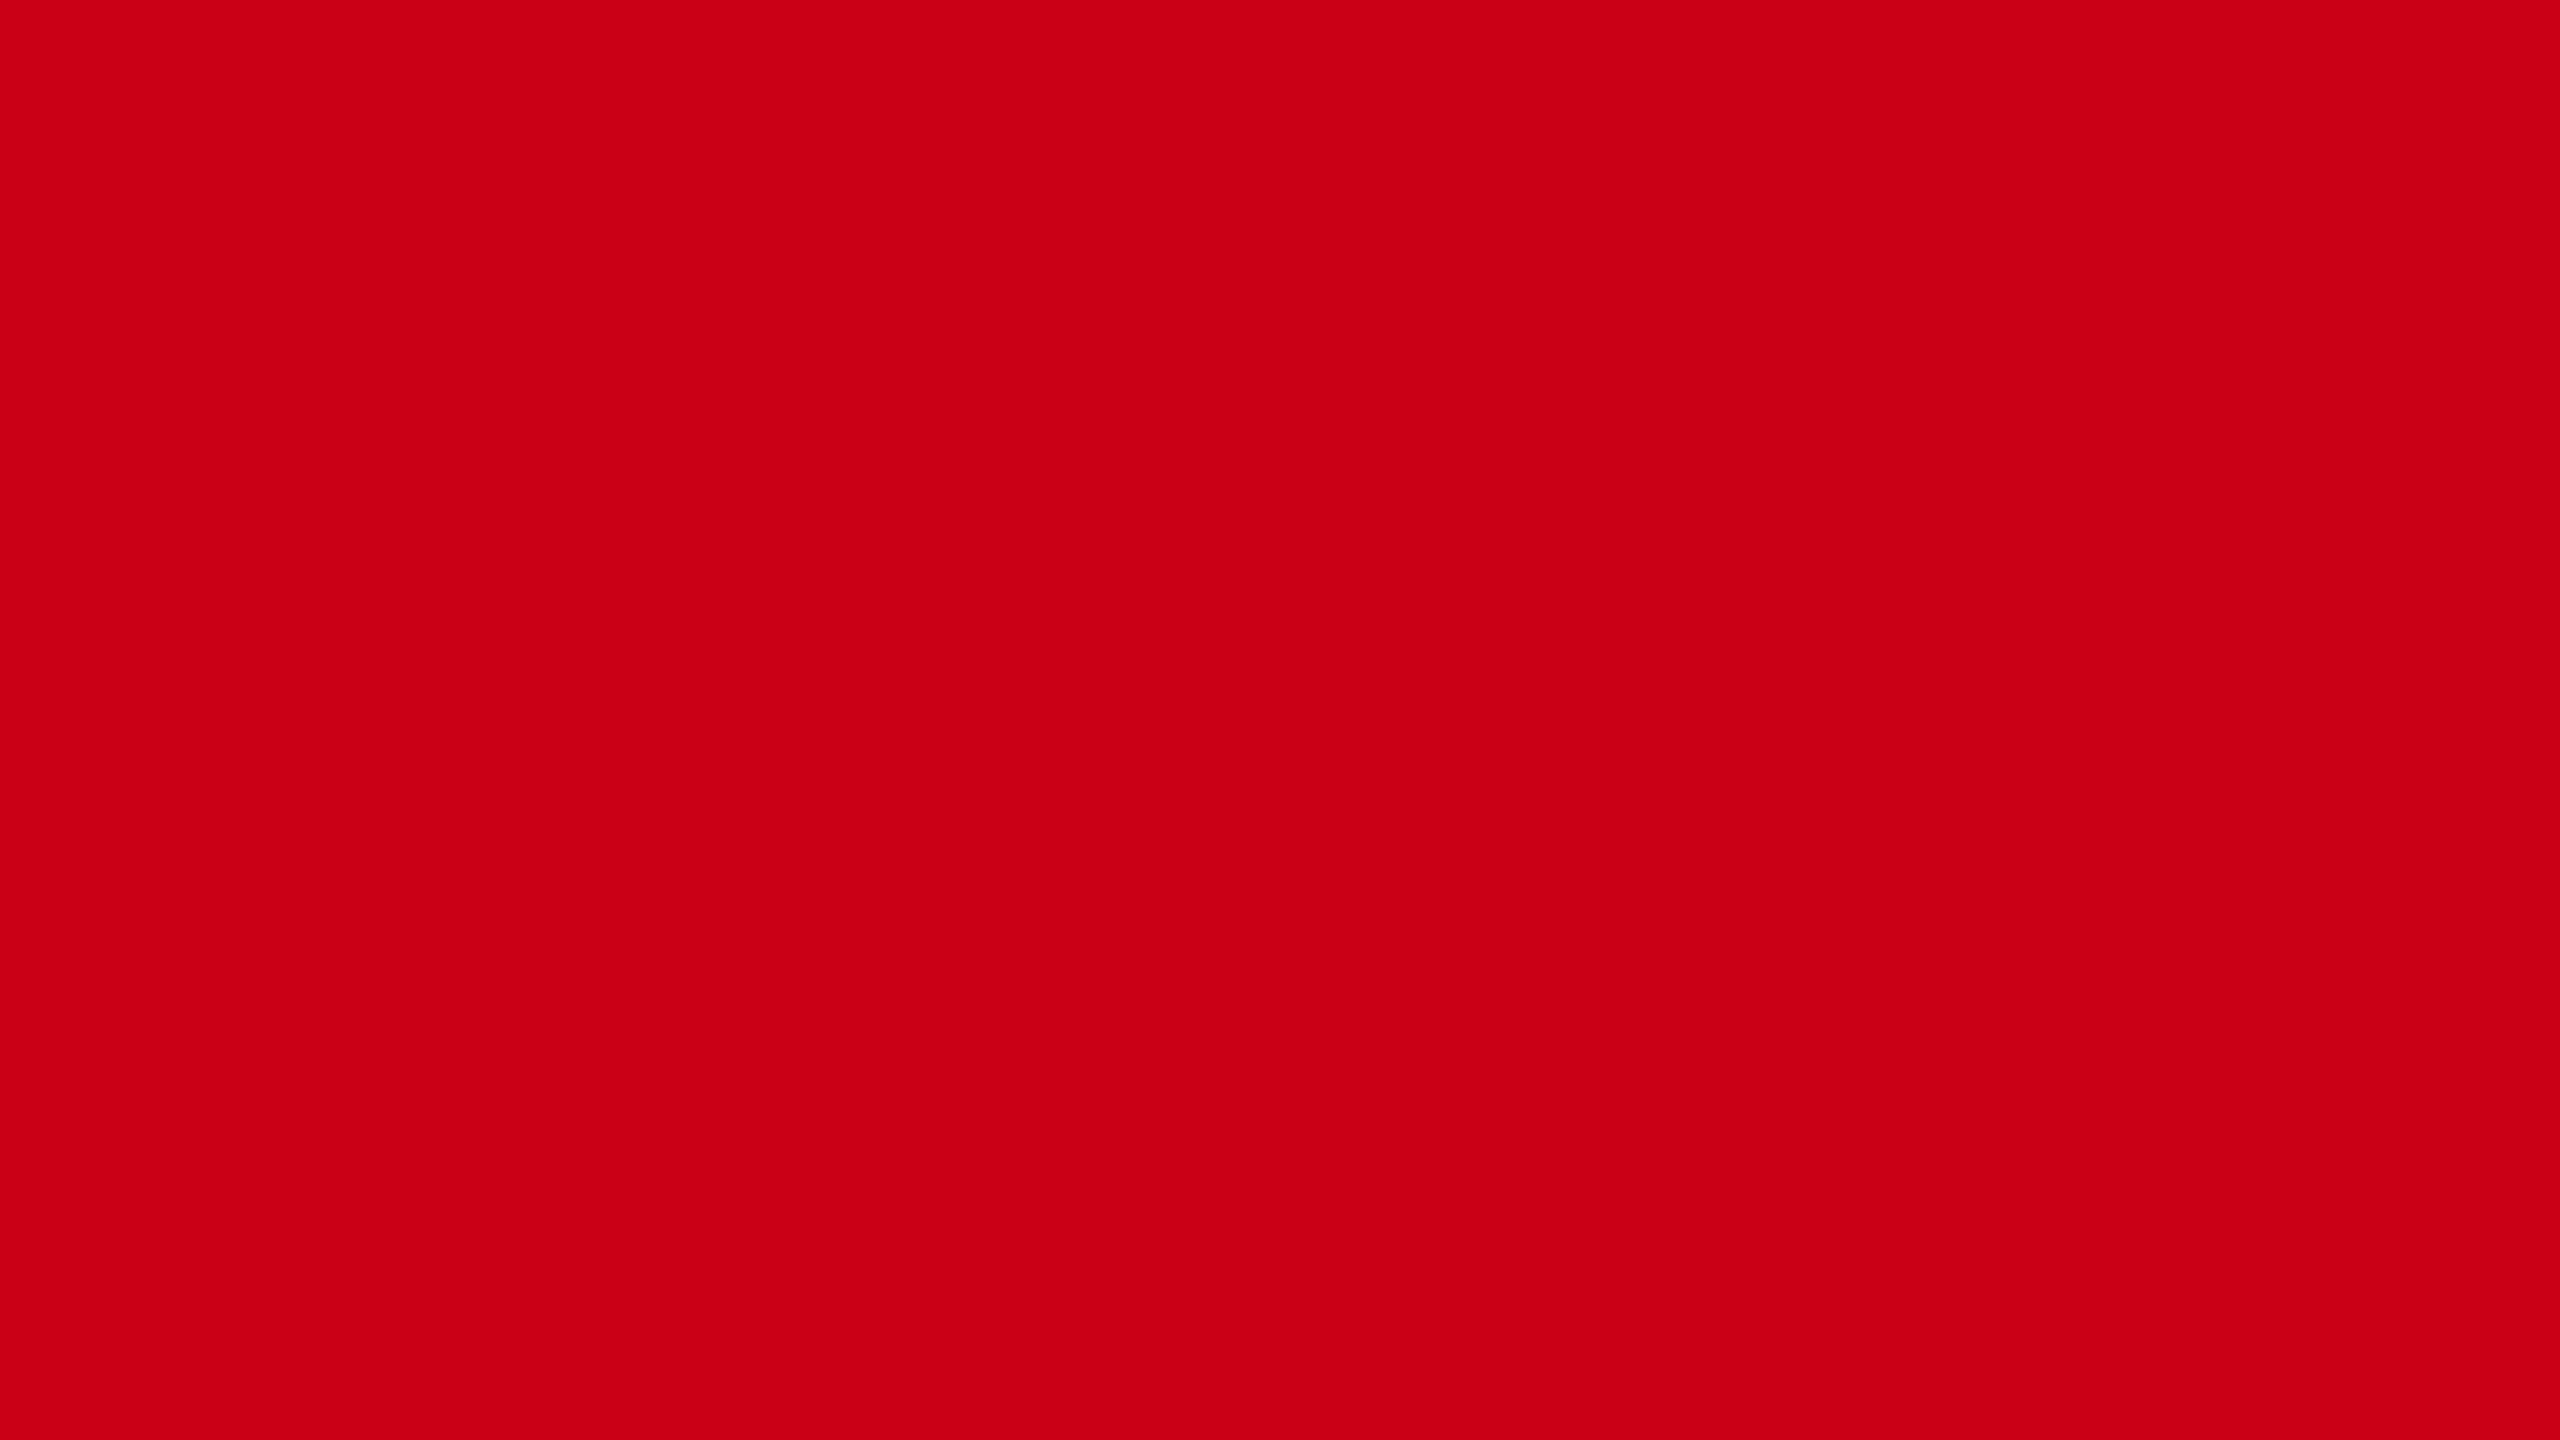 2560x1440 Harvard Crimson Solid Color Background